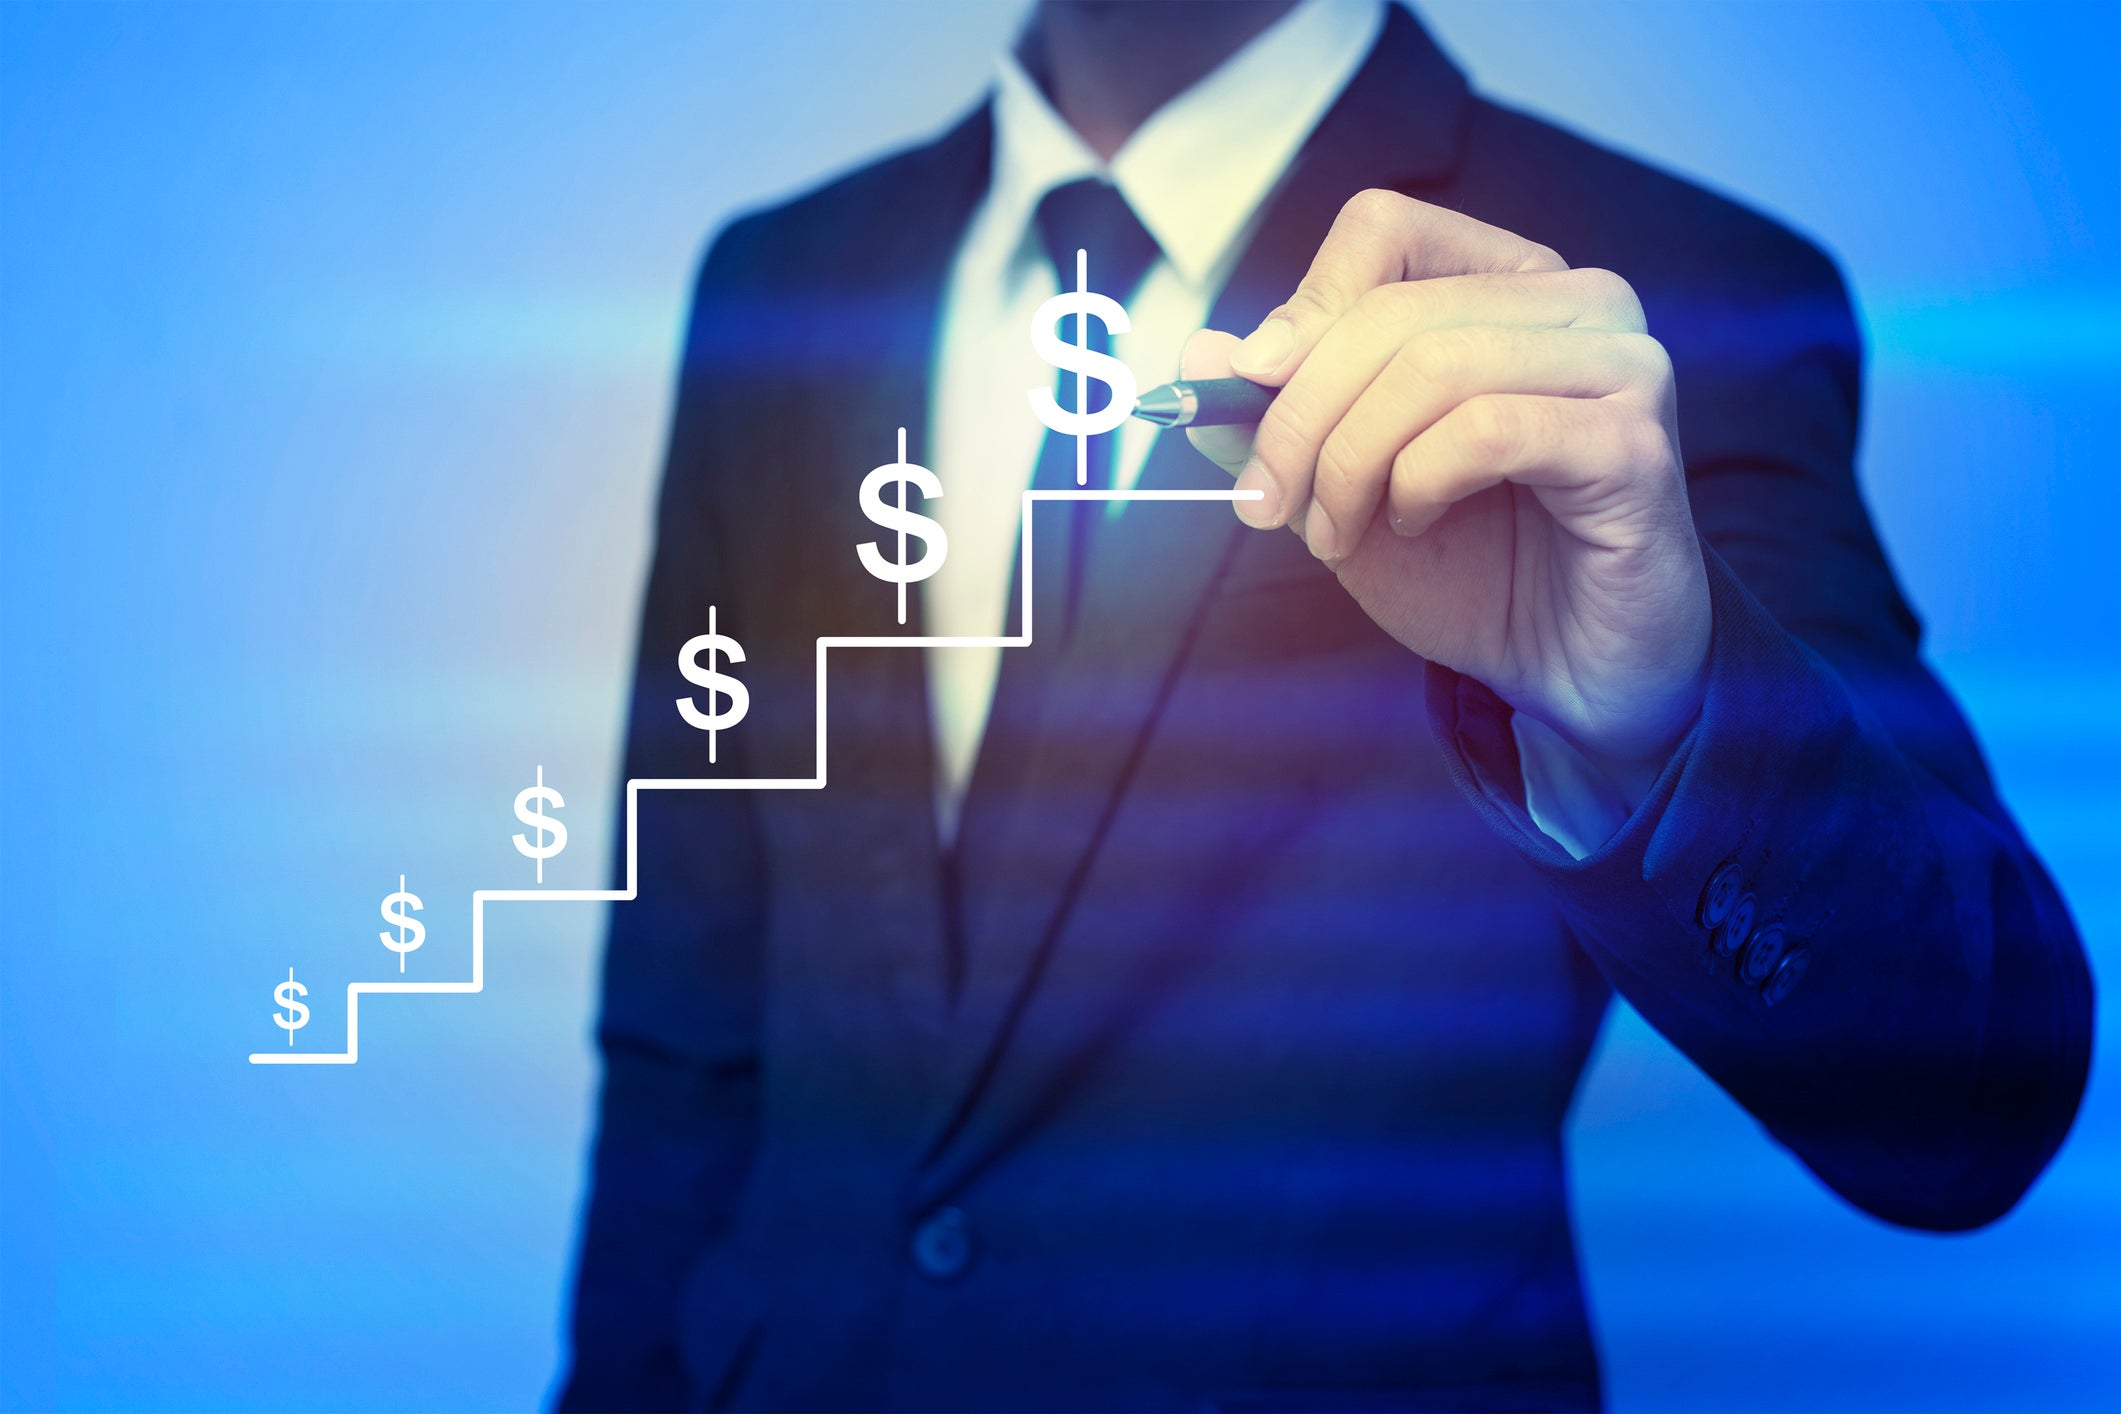 What Are Good Stocks to Invest in Now? | The Motley Fool